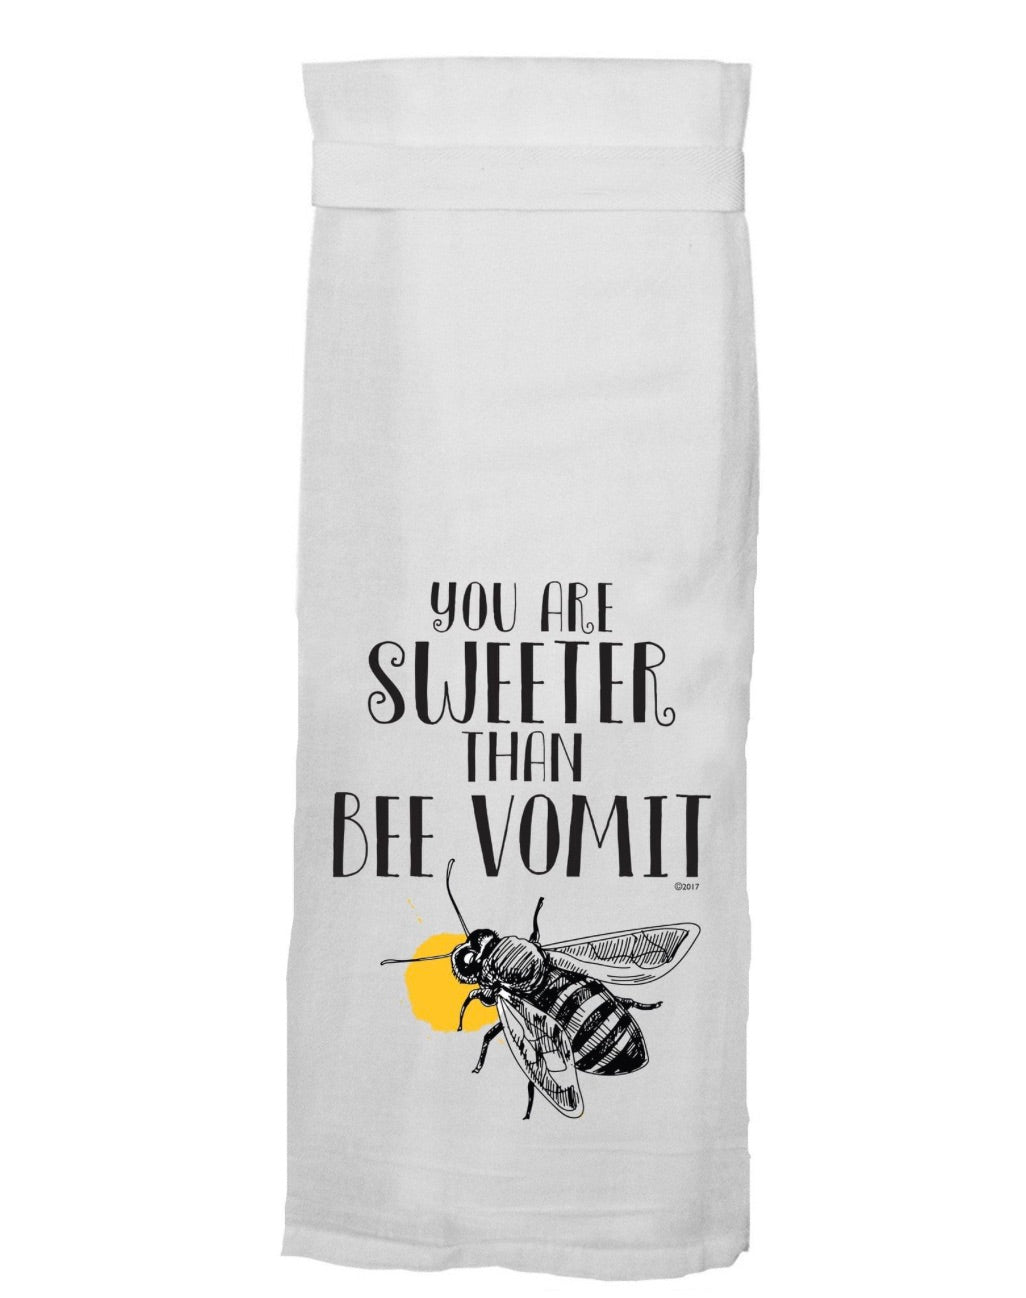 Your Are Sweeter Than Bee Vomit HANG TIGHT TOWEL®